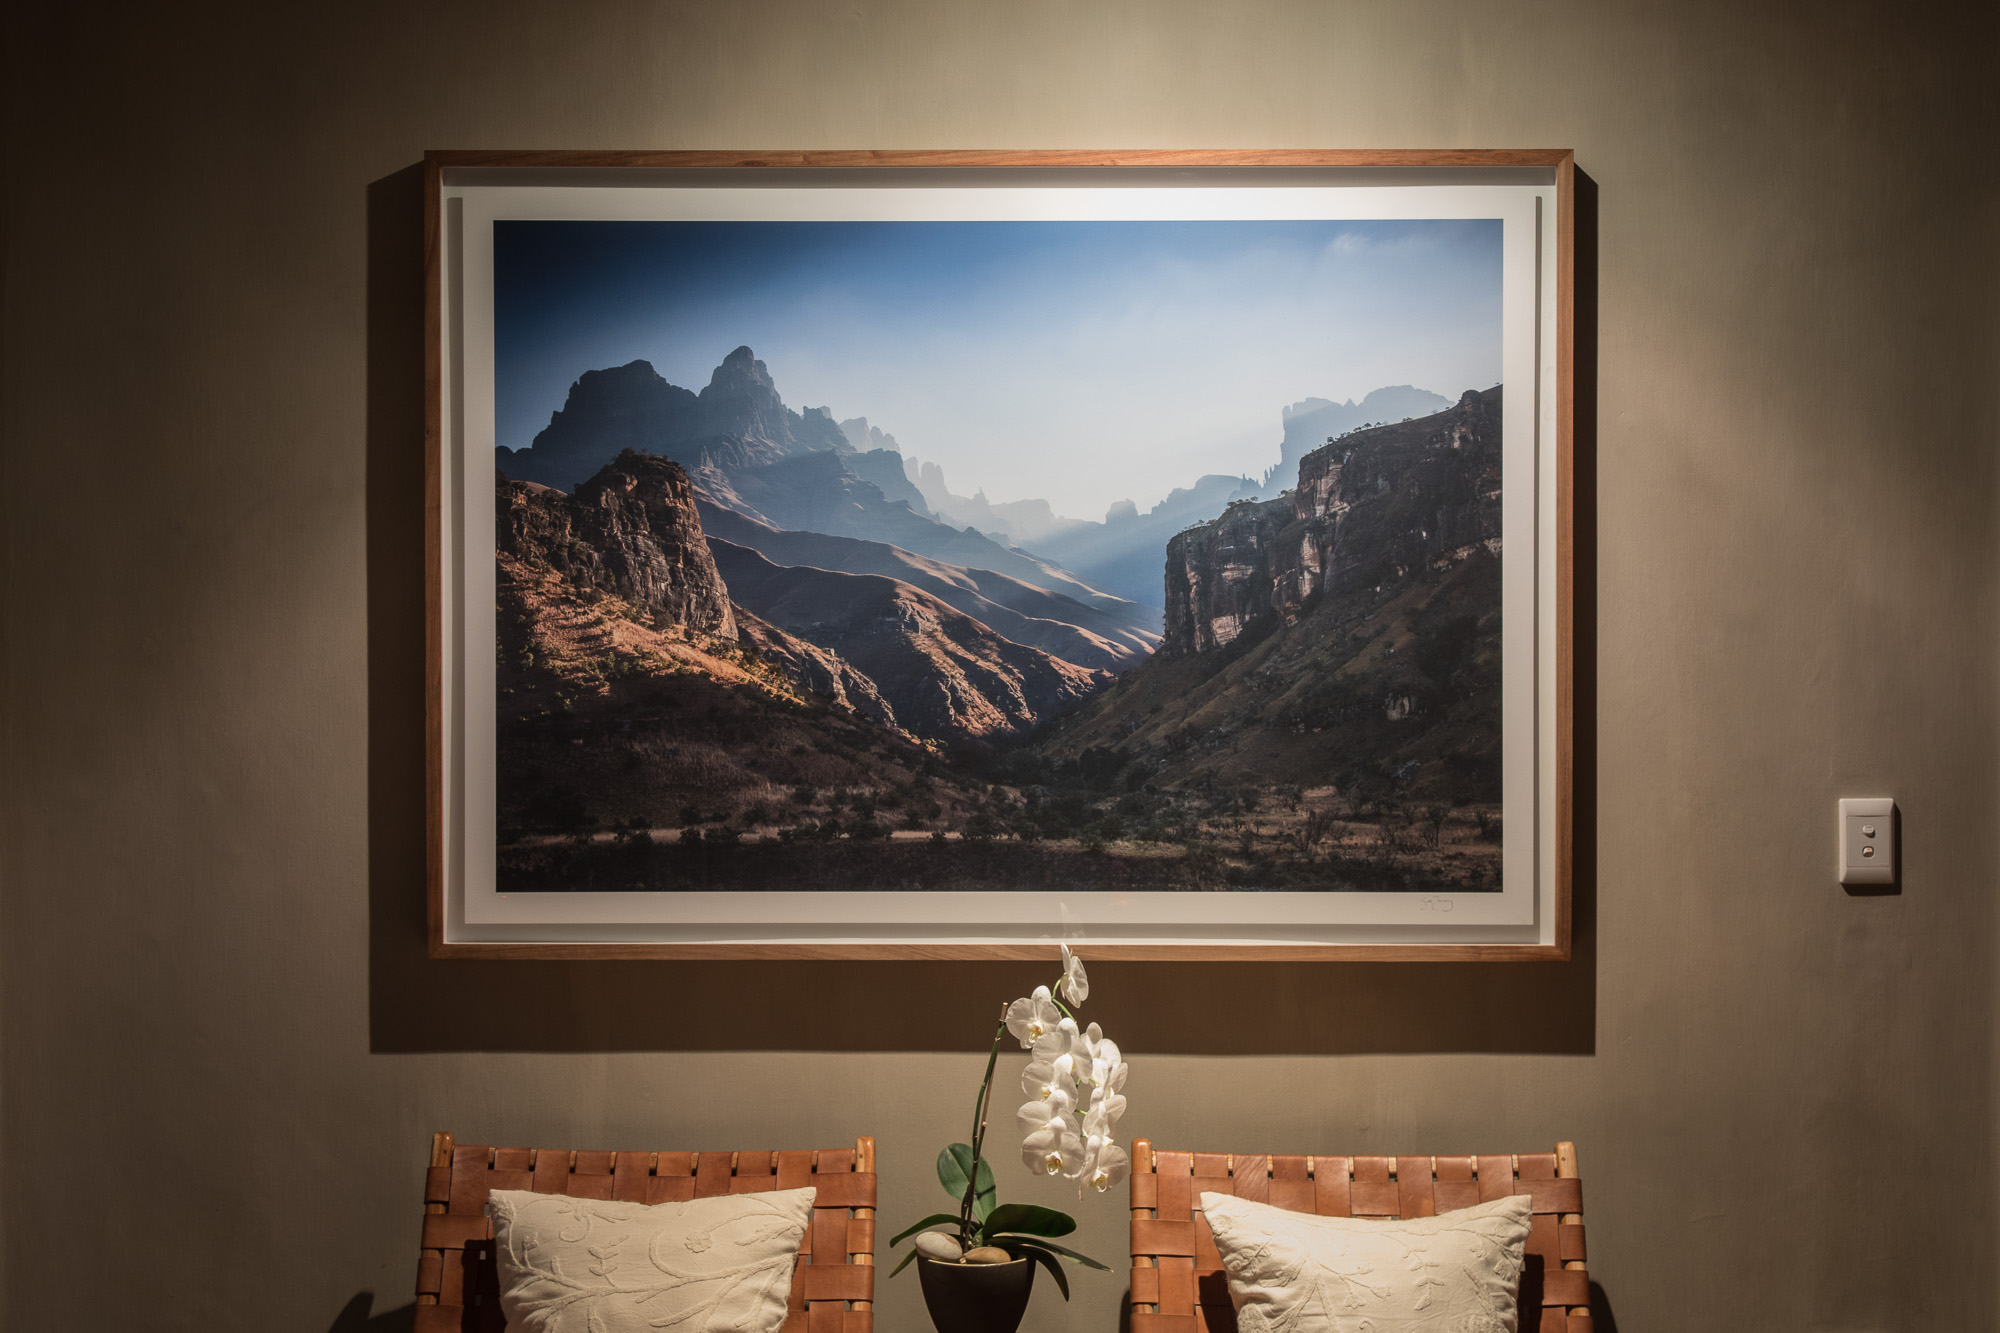 Northern Drakensberg - Epson Fine Art Paper Print with Wood Frame and Glass